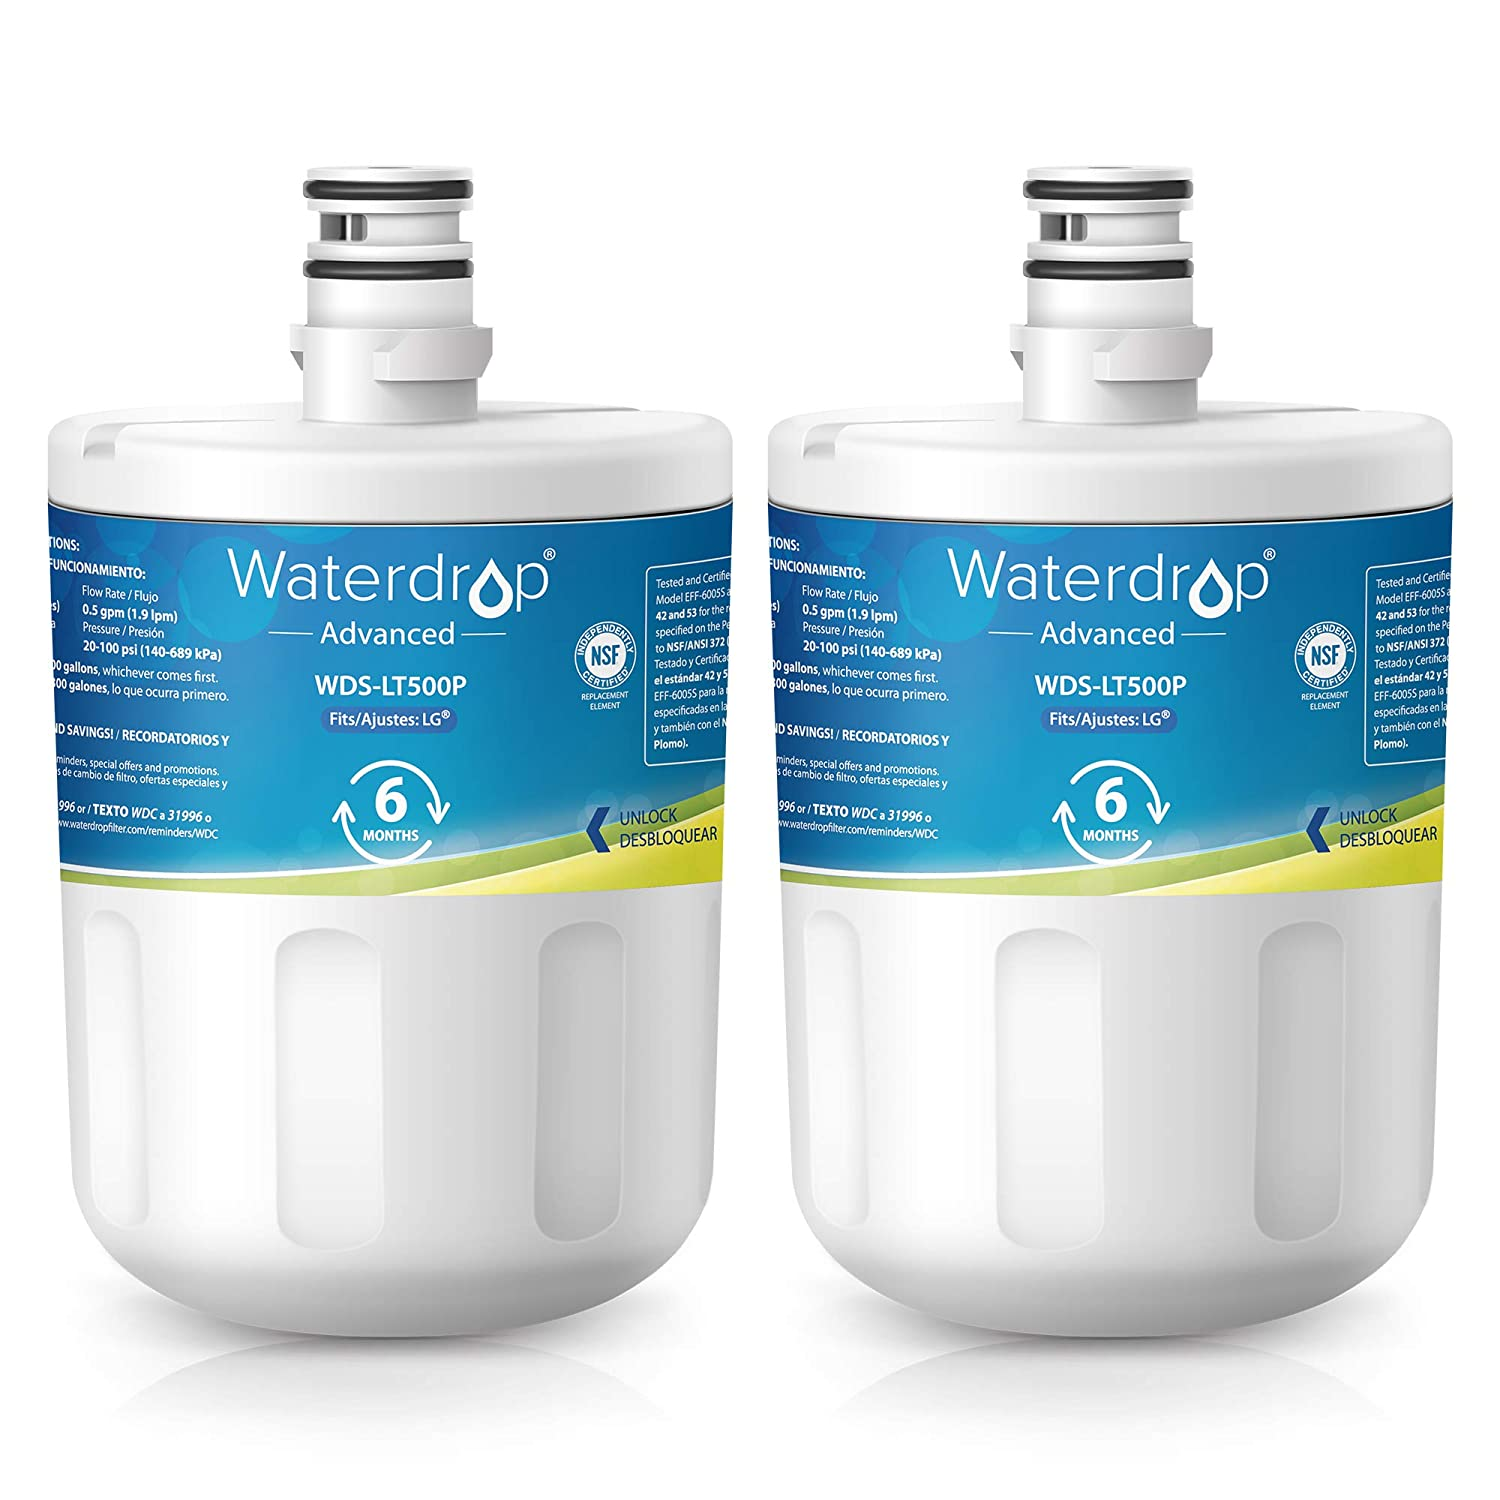 Waterdrop NSF 53&42 Certified LT500P Replacement Refrigerator Water Filter, Compatible with LG LT500P, 5231JA2002A, ADQ72910901, Kenmore GEN11042FR-08, 9890, 46-9890, Advanced Series, Pack of 2